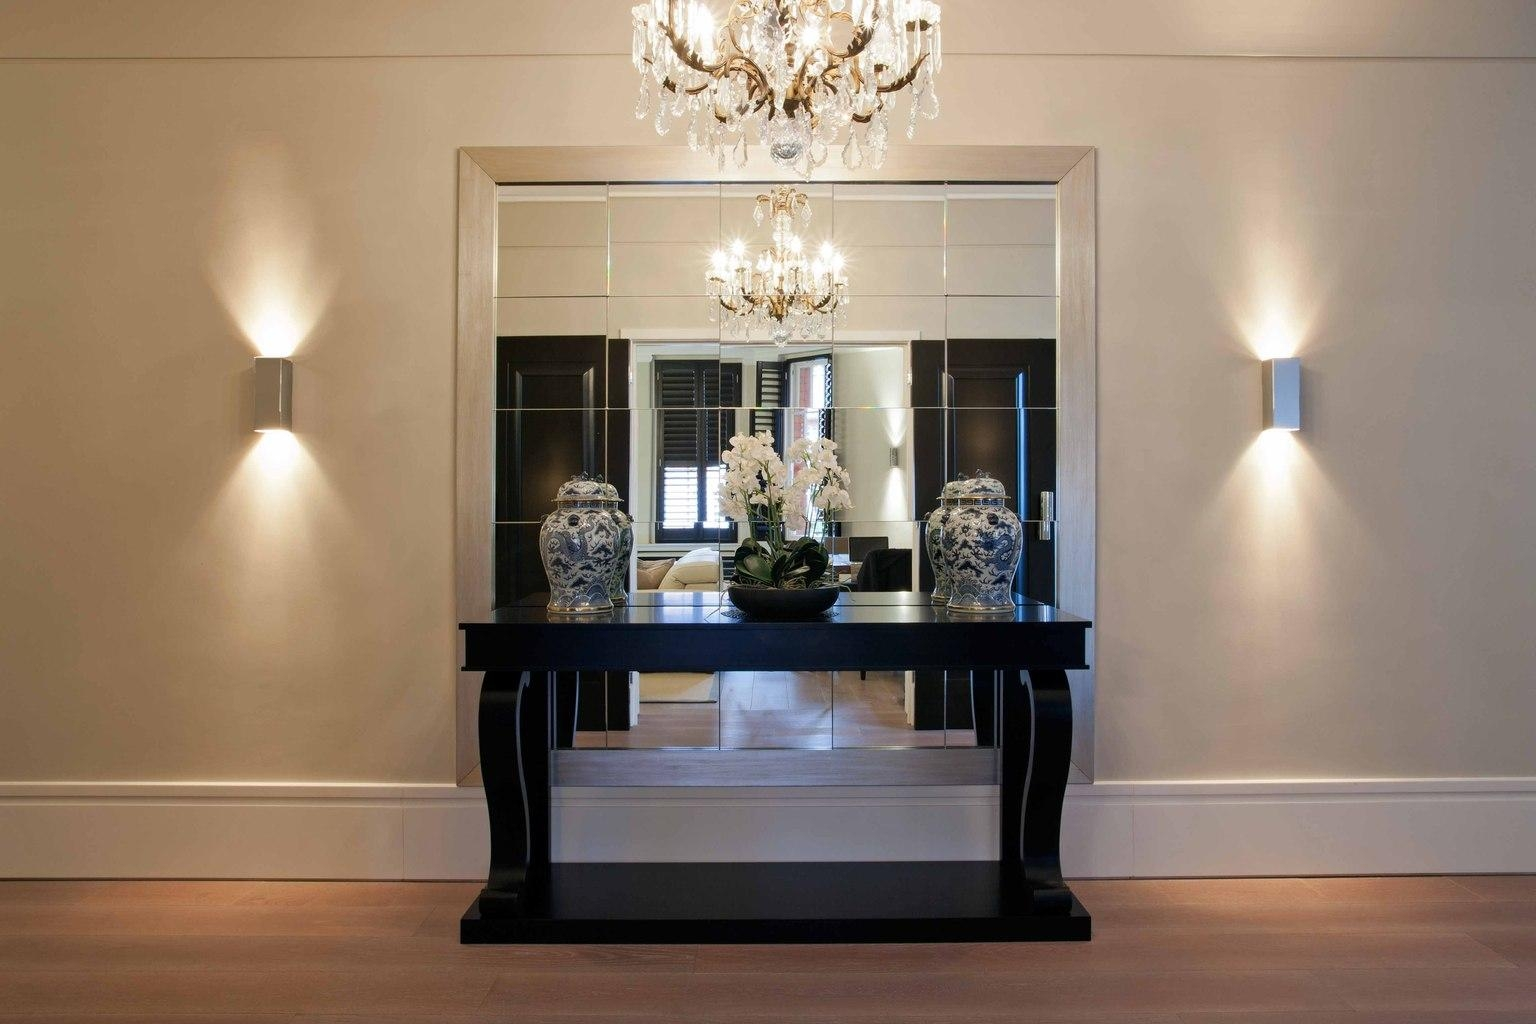 Unique Entry Hall Tables And Mirrors With Gallery Of Finding The Intended For Mirrors For Entry Hall (View 21 of 21)